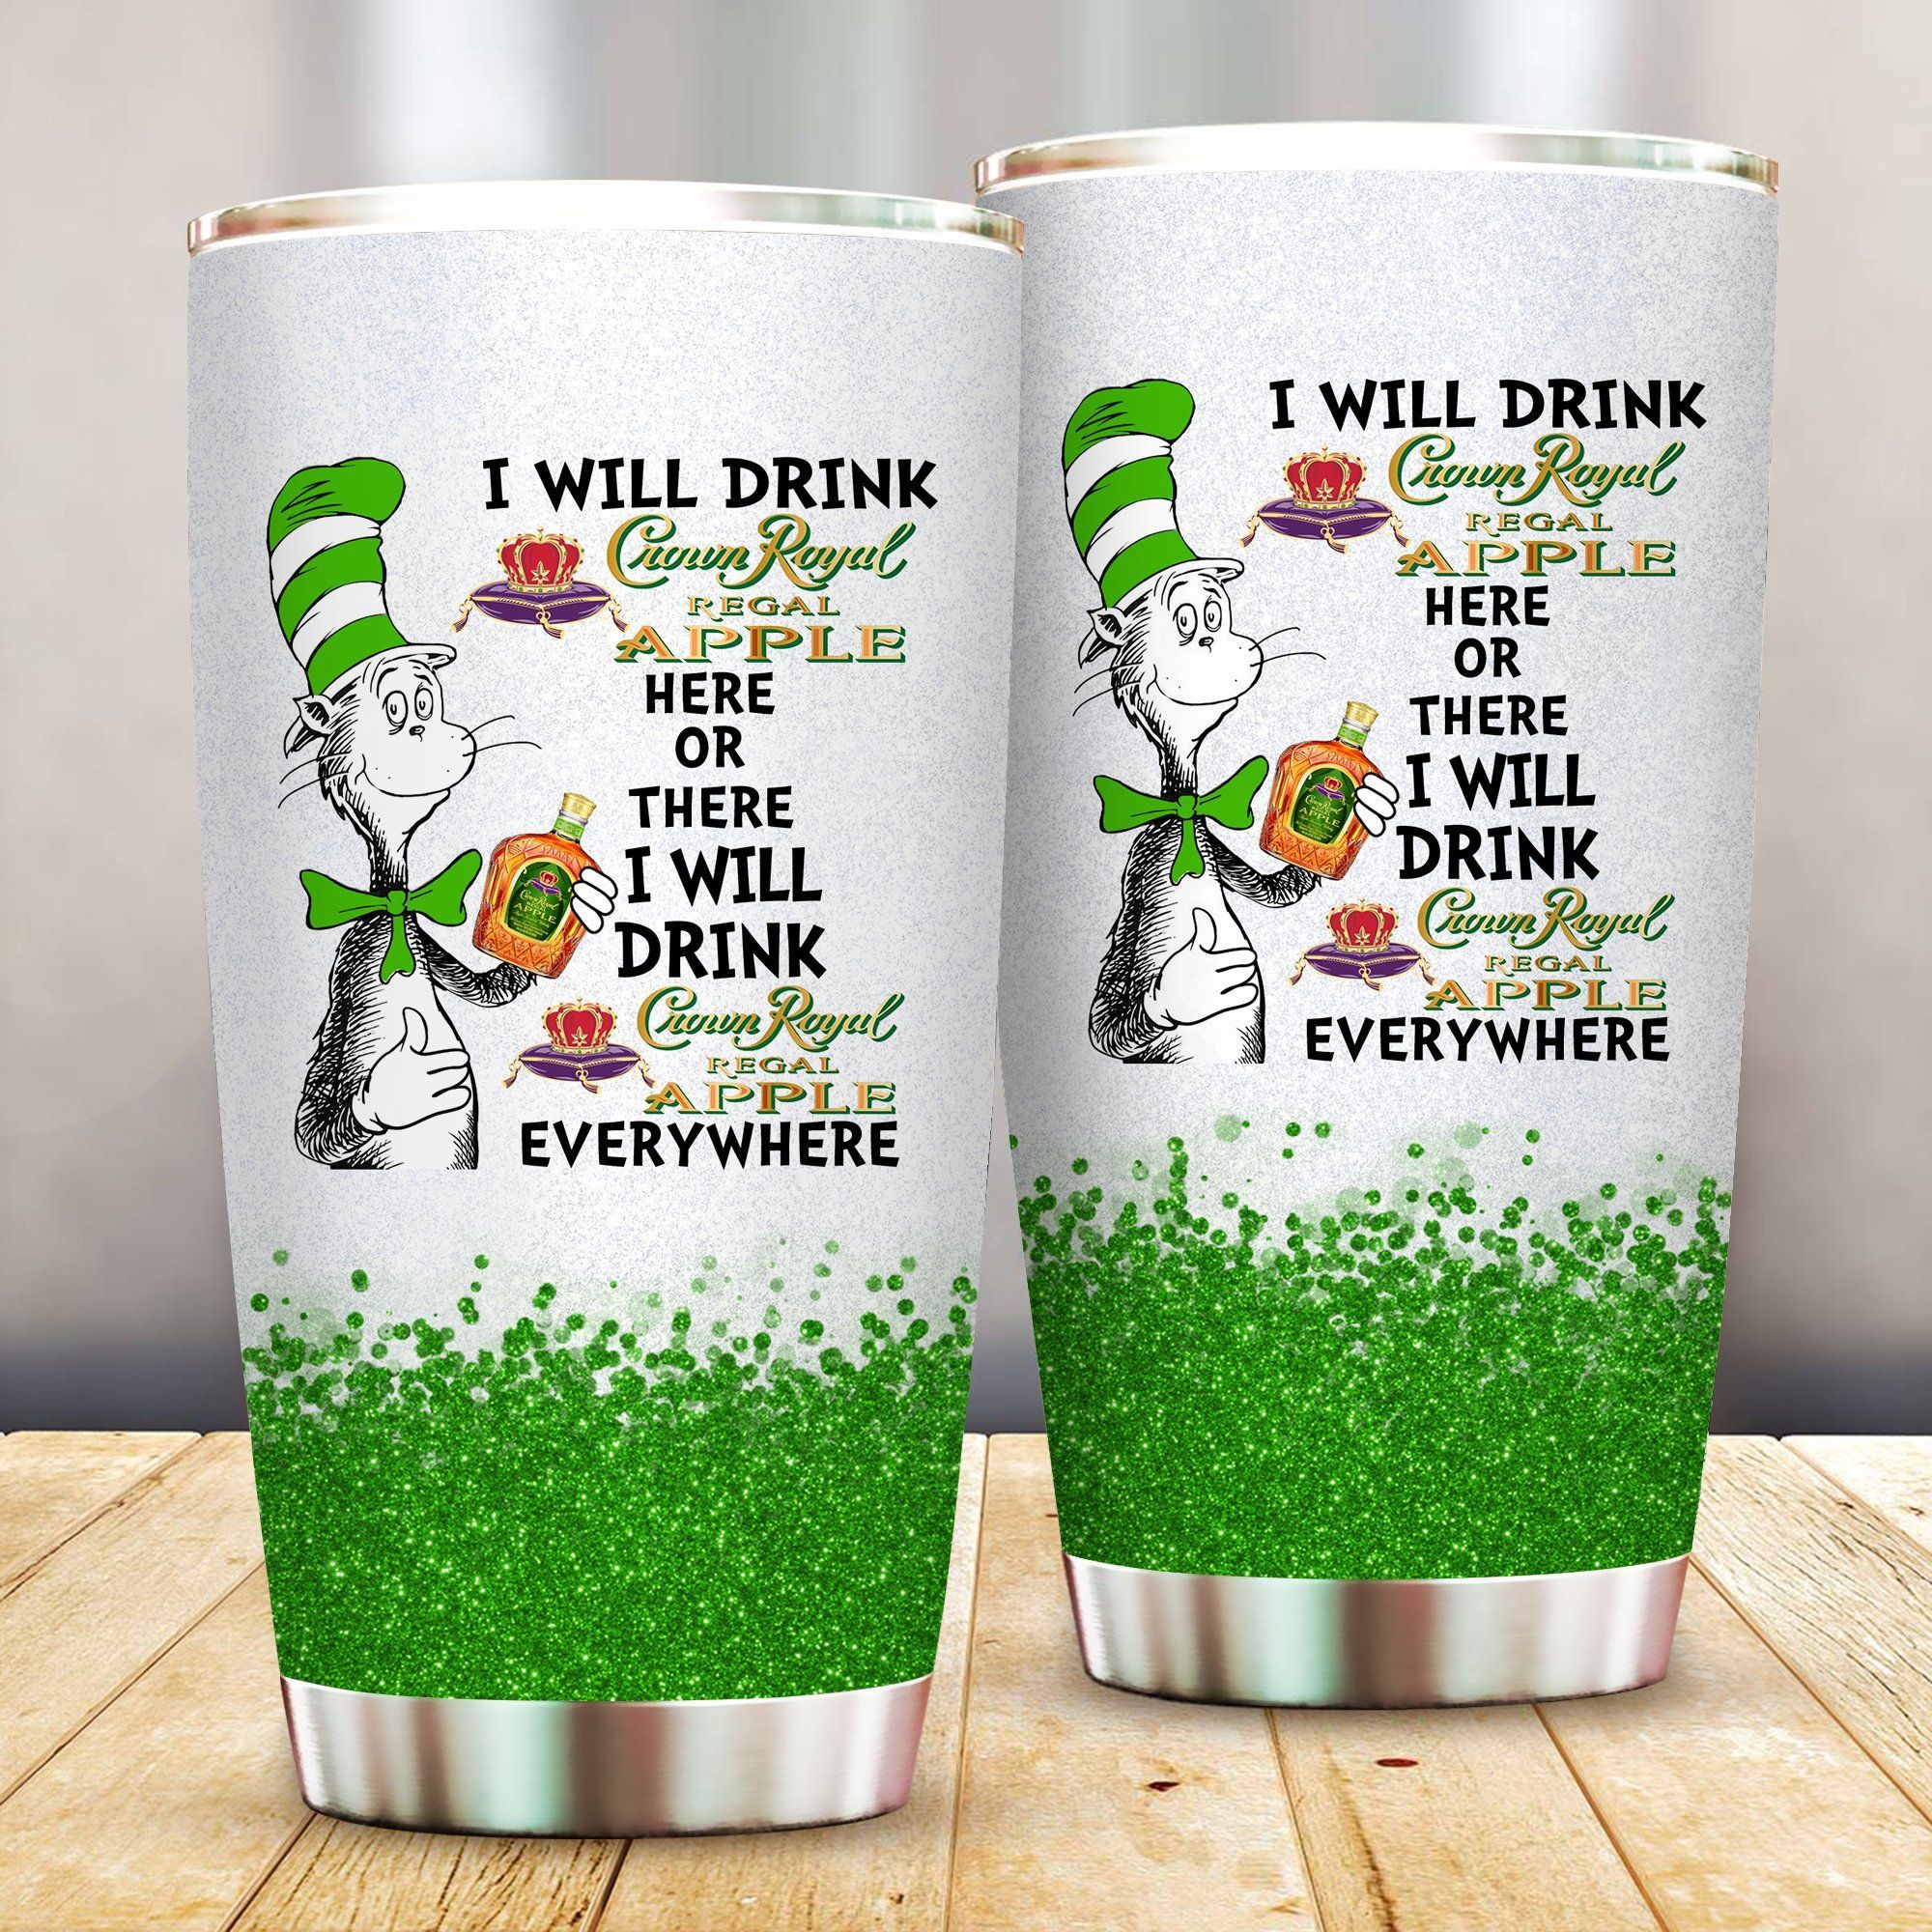 I will drink Crown Royal Apple here or there or Everywhere - Coffee Mug Gift Ideas 2020 - Tumbler Cup Unisex Tshirt